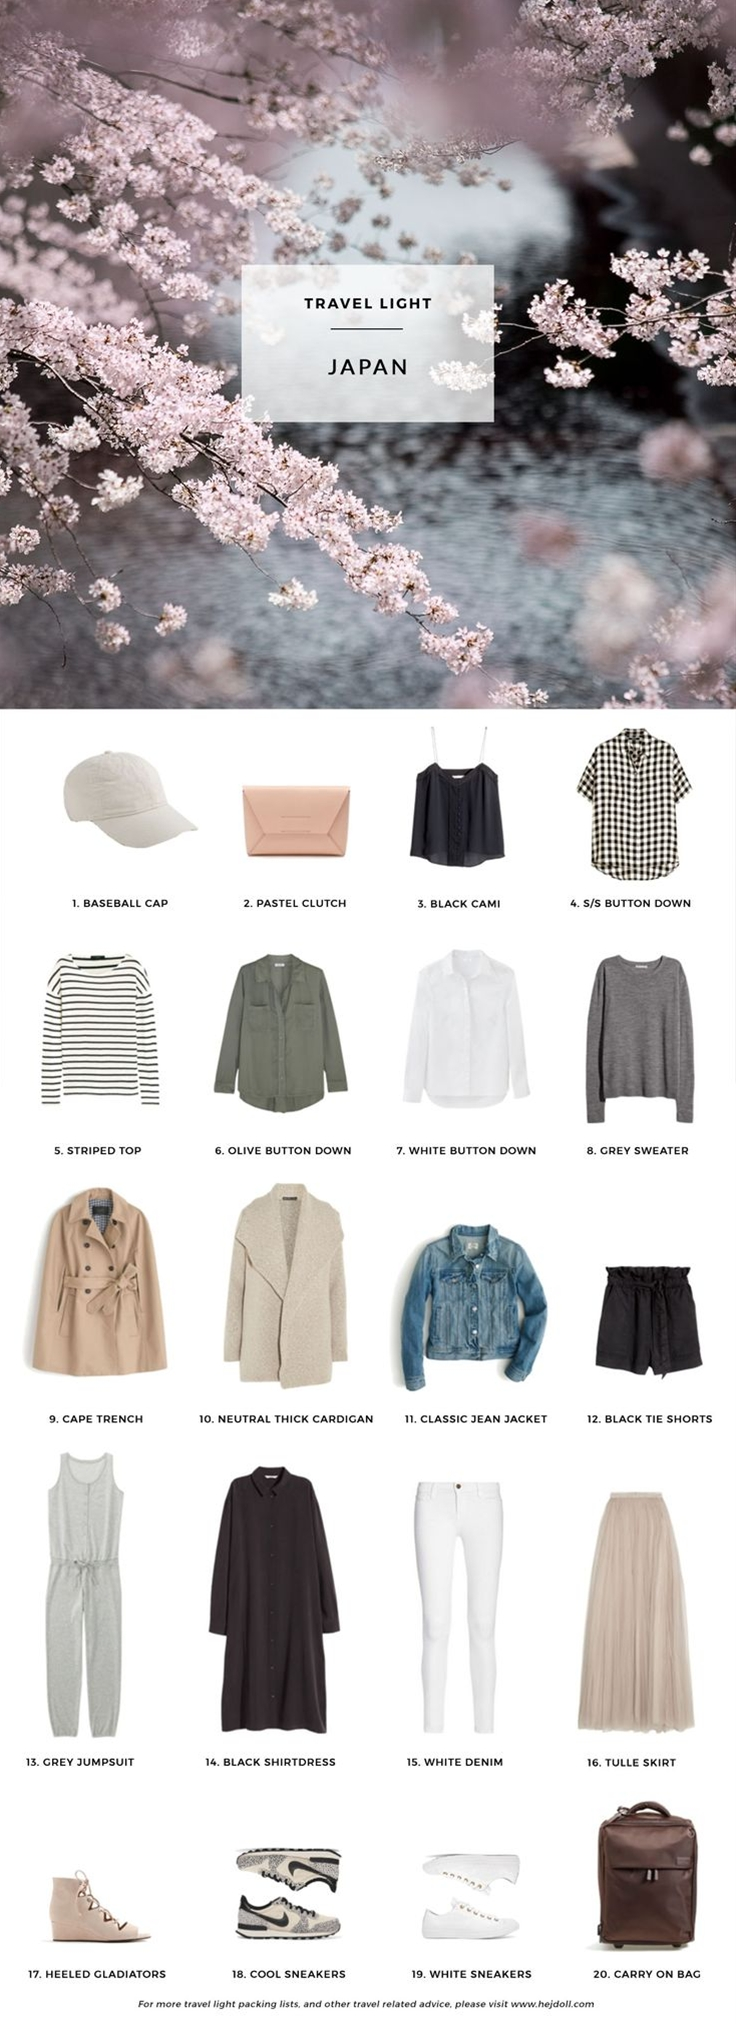 What to pack for Japan in the Spring. 20 items, 10+ days/outfits, 1 carry on suitcase. #travellight #packingtips #traveltips